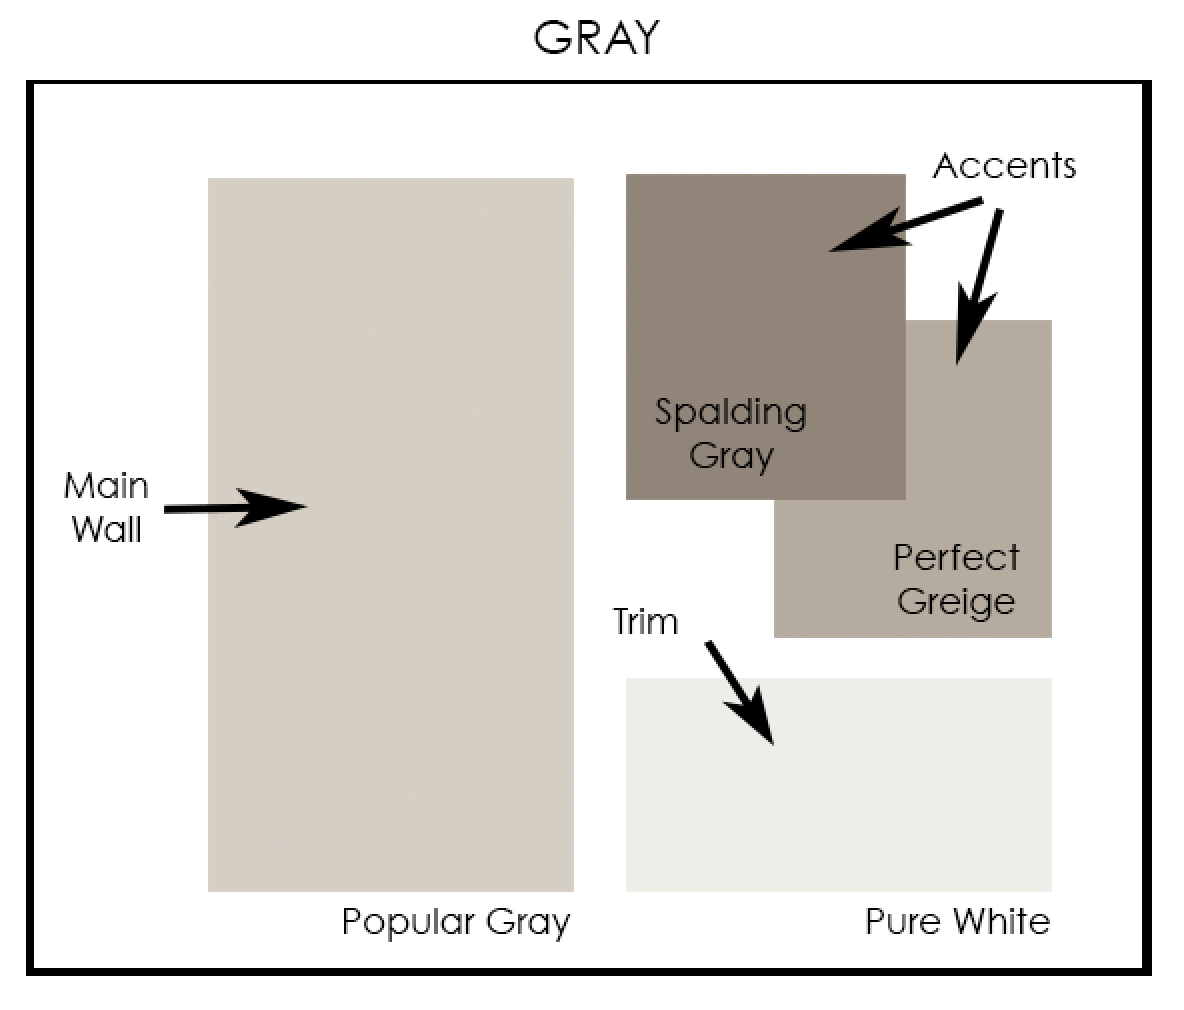 Gray interior paint color schemes - Gray Color Palette With Sherwin Williams Paint By A Clore Interiors Www Acloreinteriors